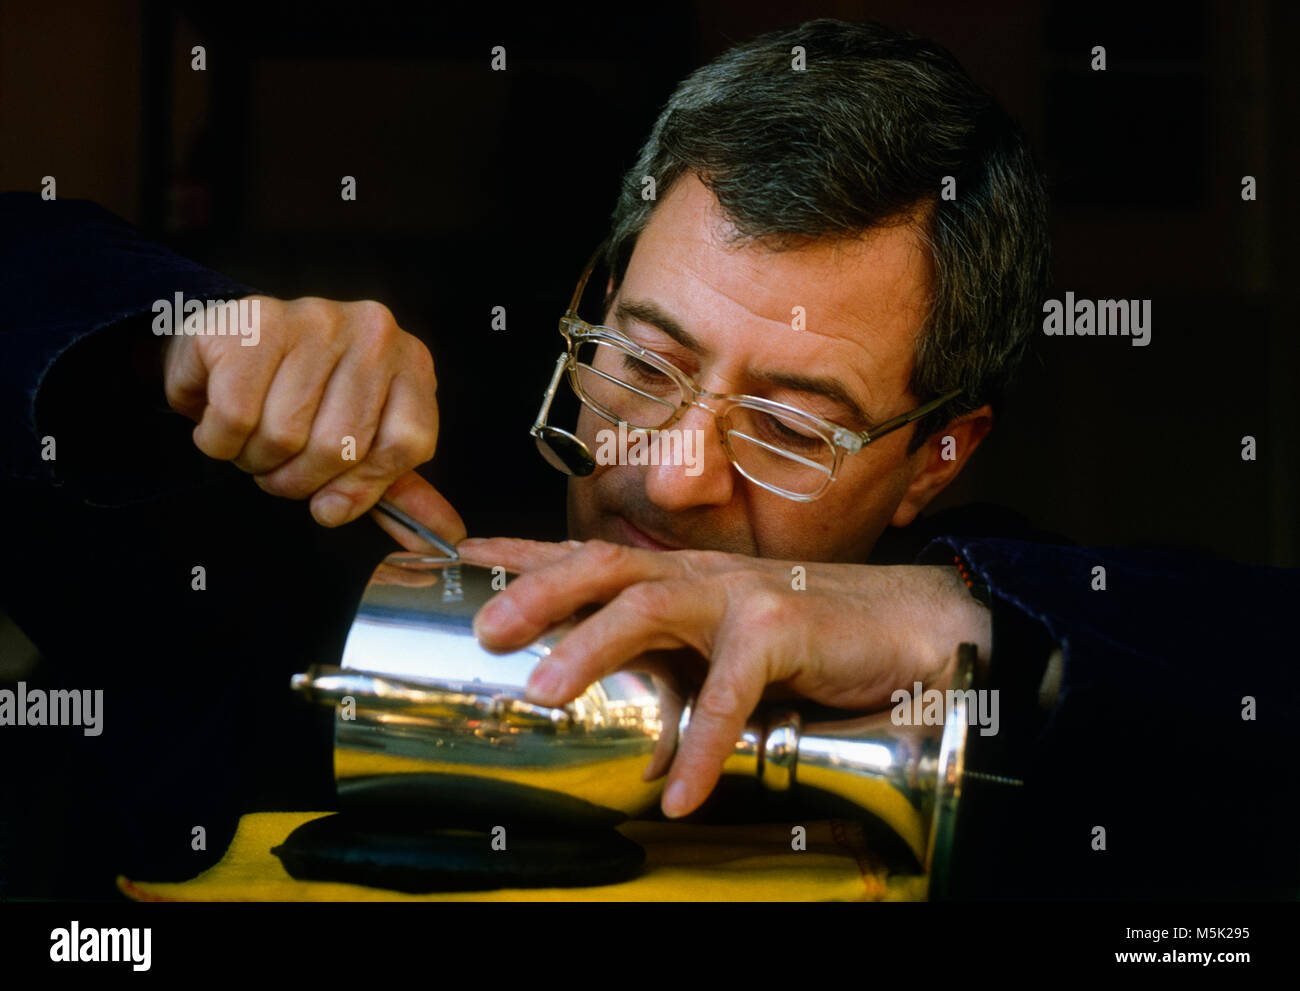 Engraver working on silver trophy - Stock Image